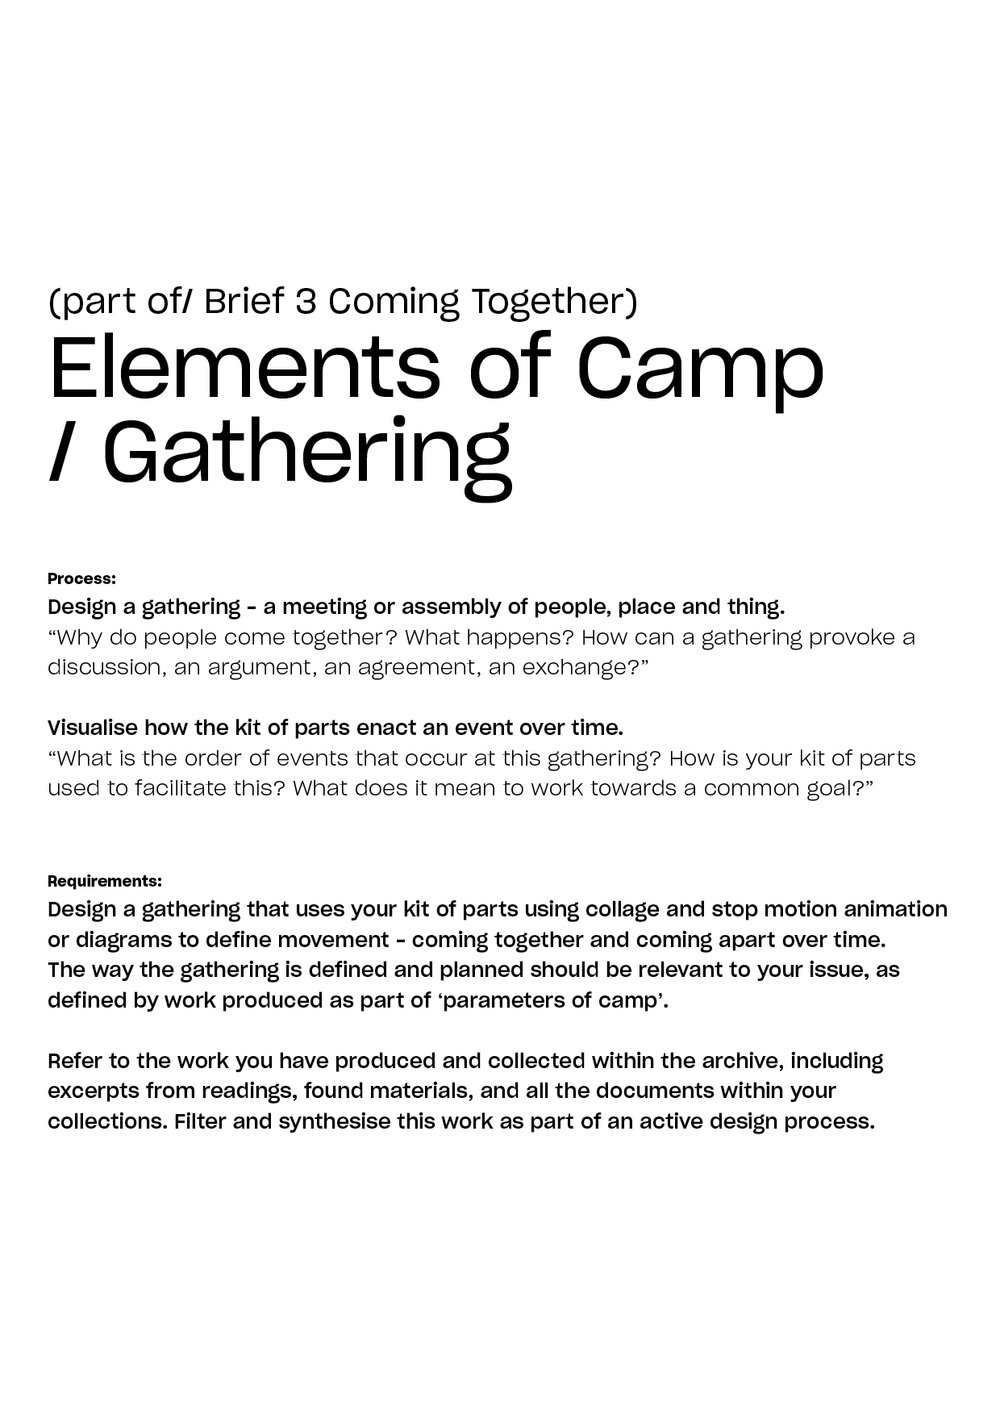 Brief_Counter-Culture-Camp-Ground_0121.jpg